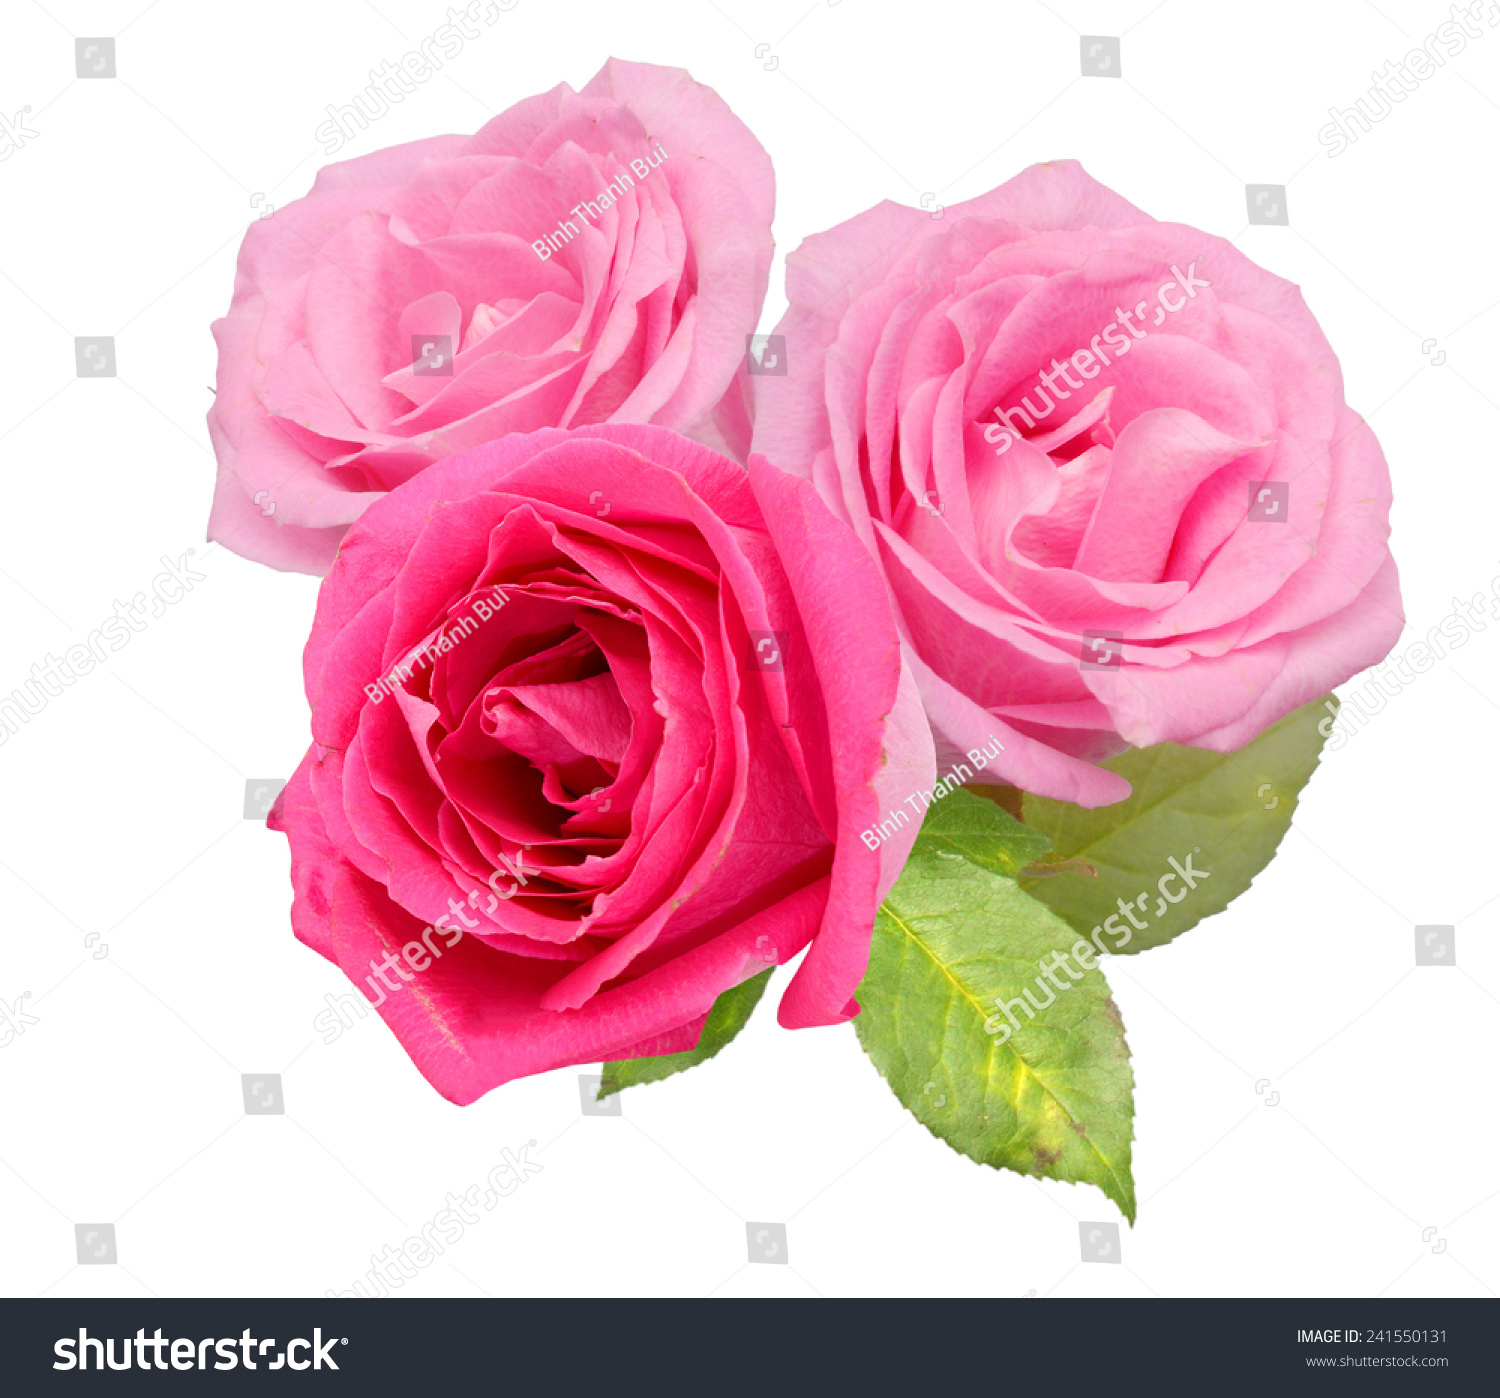 Two Beautiful Pink Rose Flowers Isolated Stock Photo (Royalty Free ...